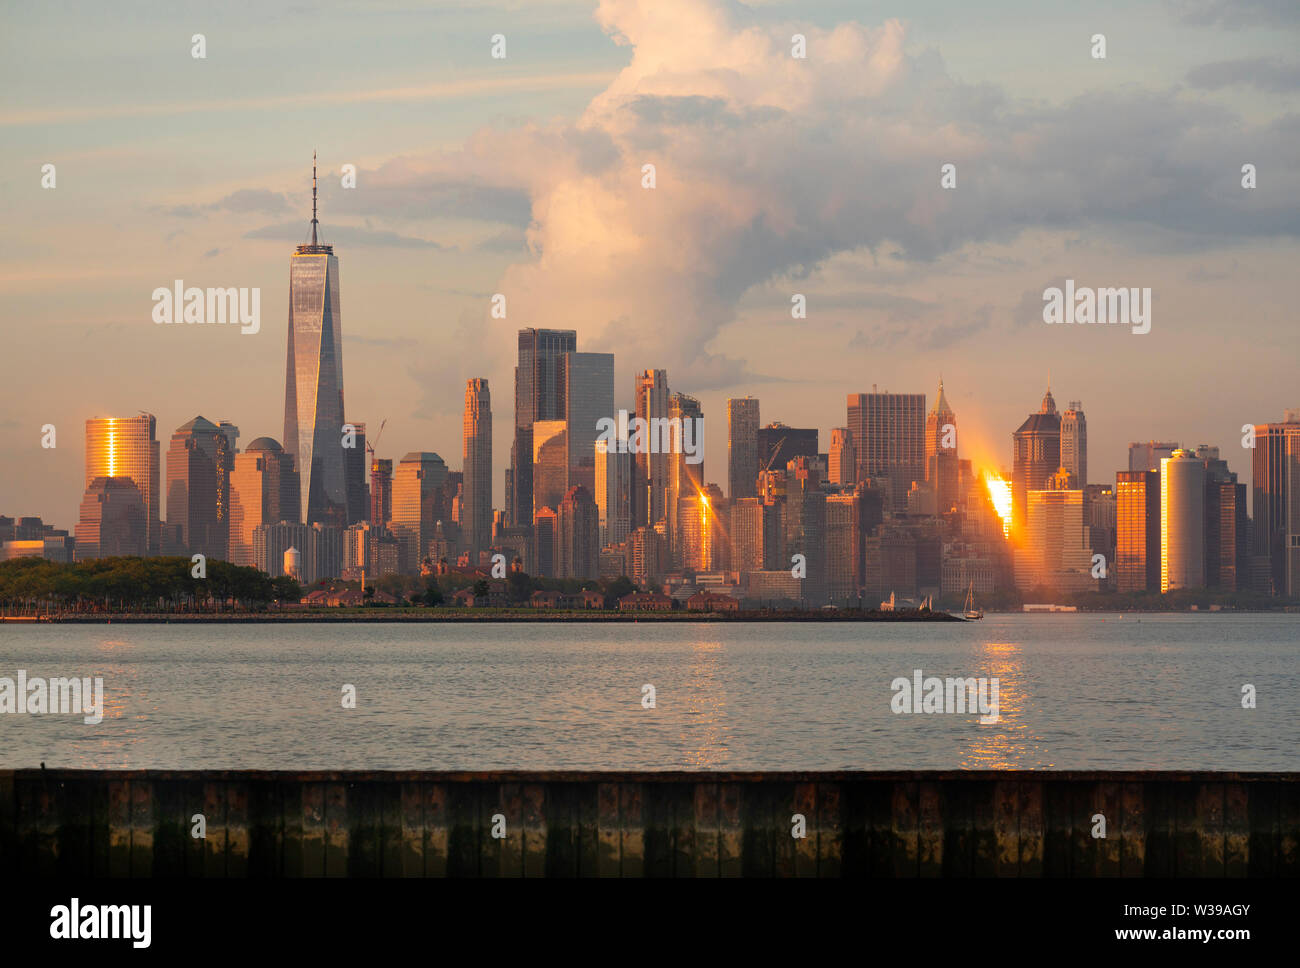 Manhattan is one of 5 Burroughs that make up New York City shown here at sunset - Stock Image